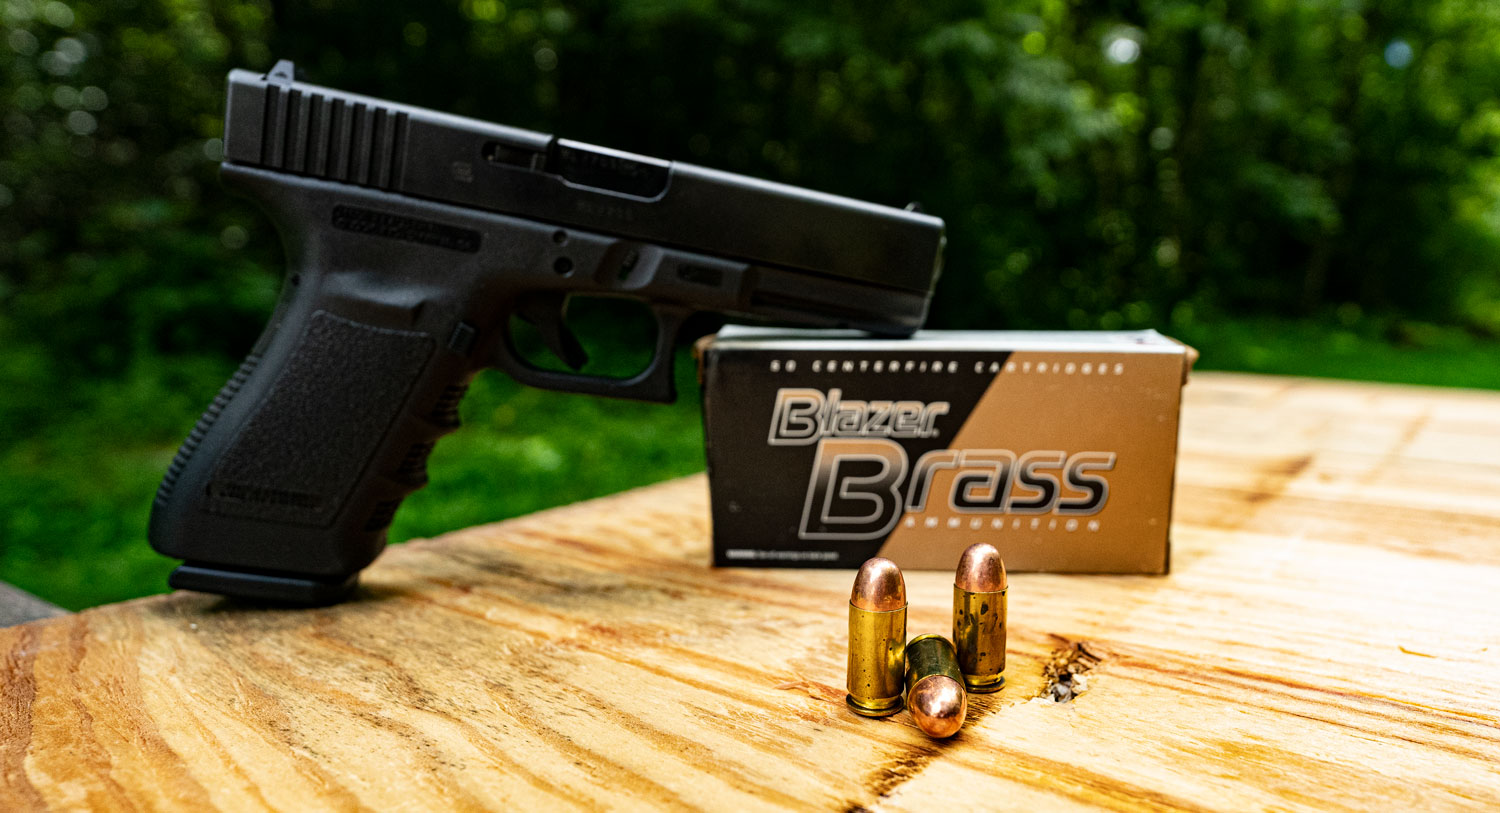 Glock 45 ACP pistol with Blazer Brass ammunition